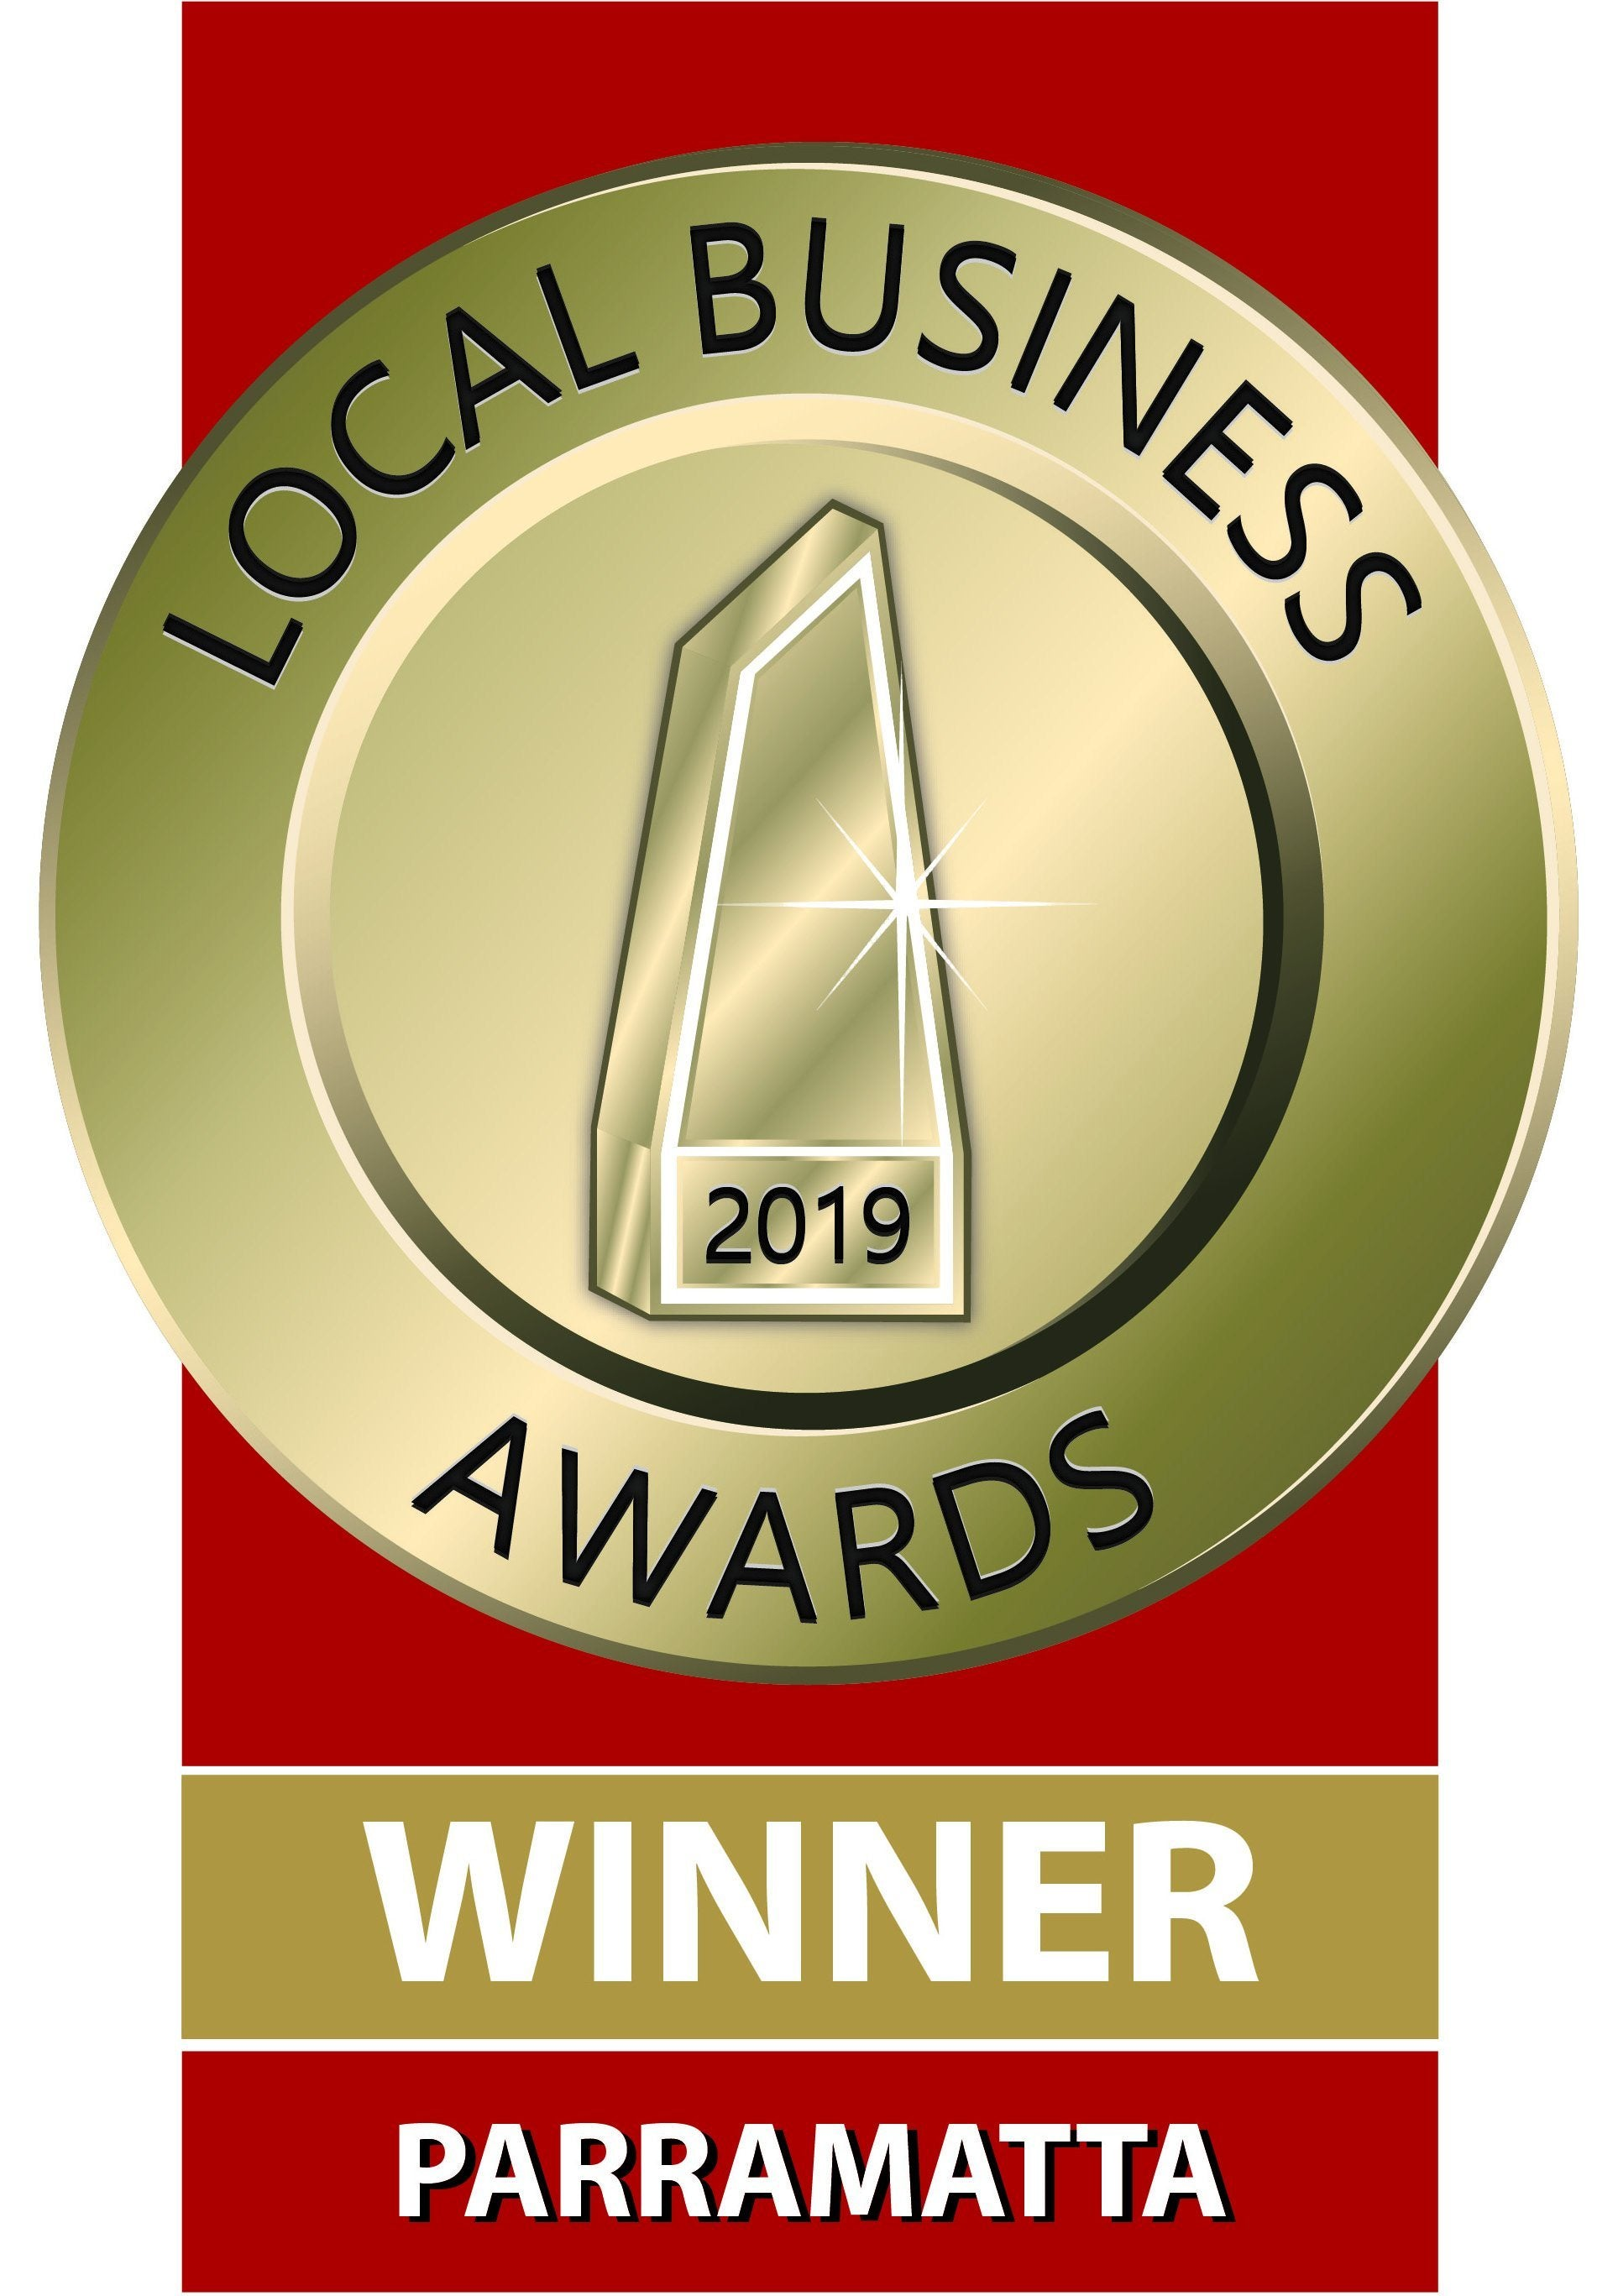 Winner of Local Business Awards 2019